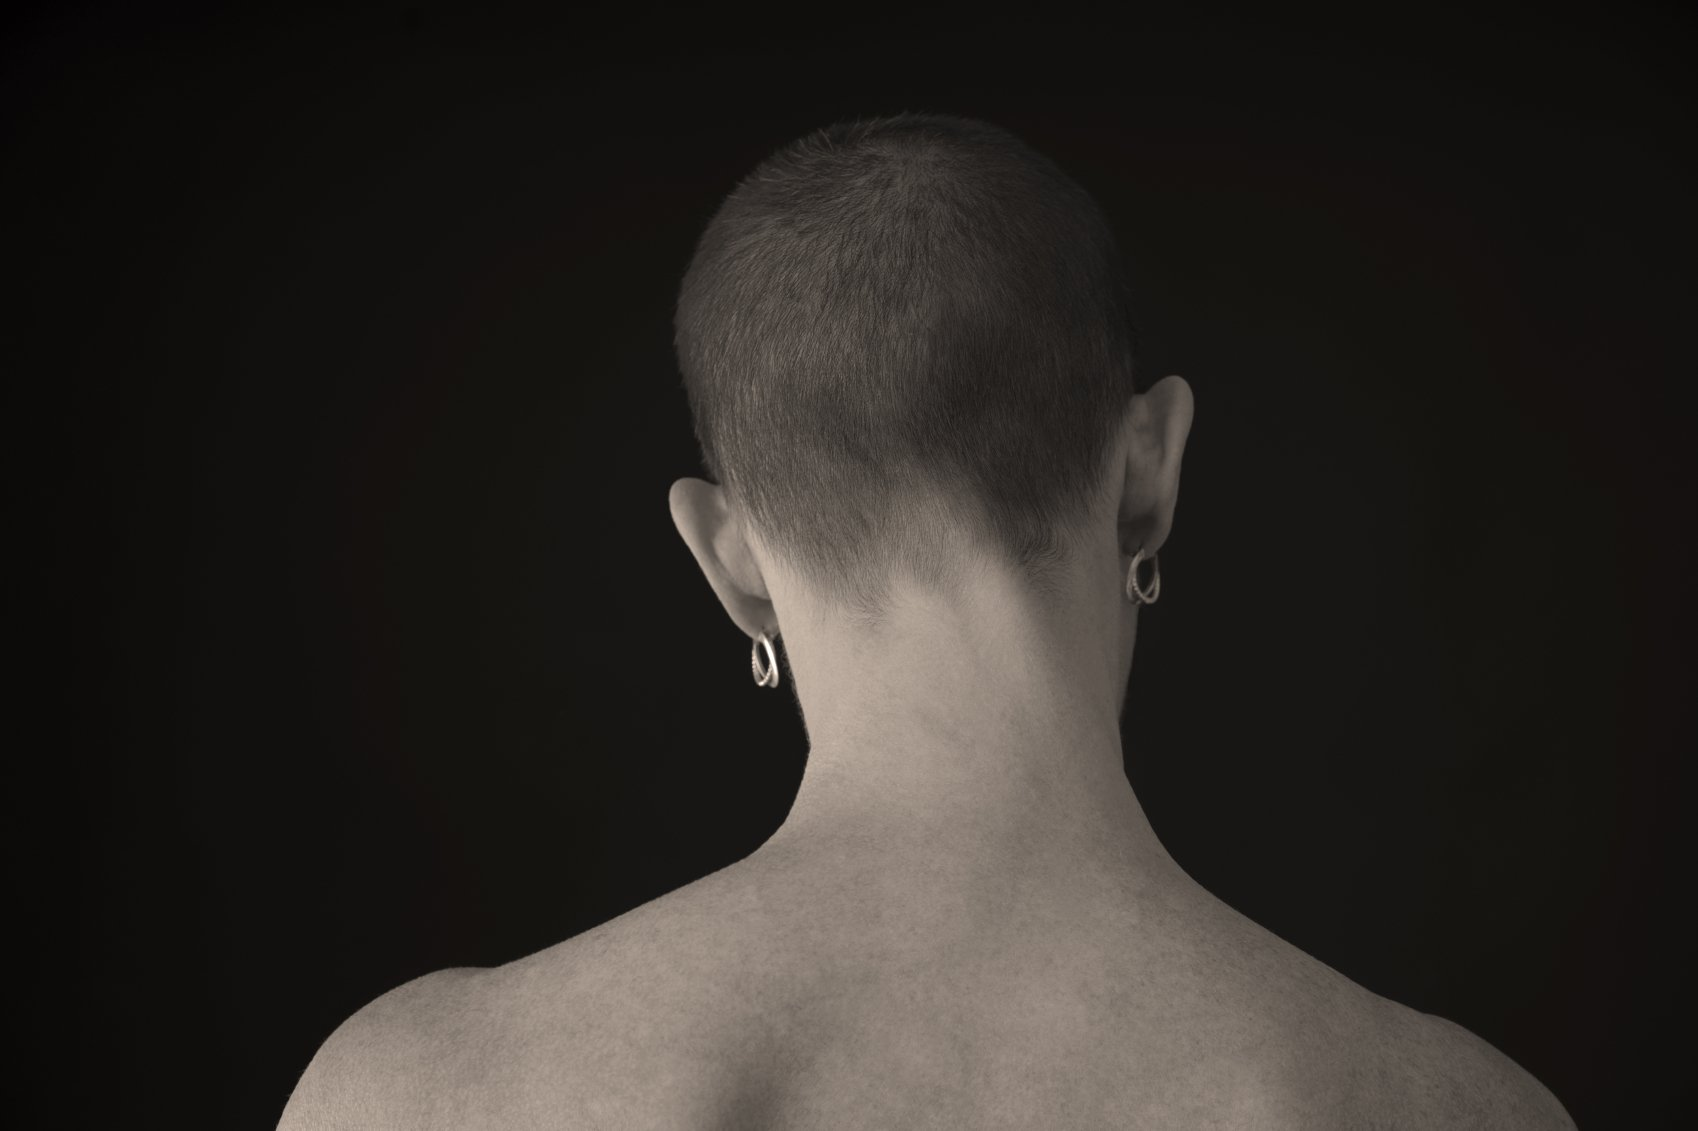 Bald Nude Woman With Cancer, Facing Away From The Camera